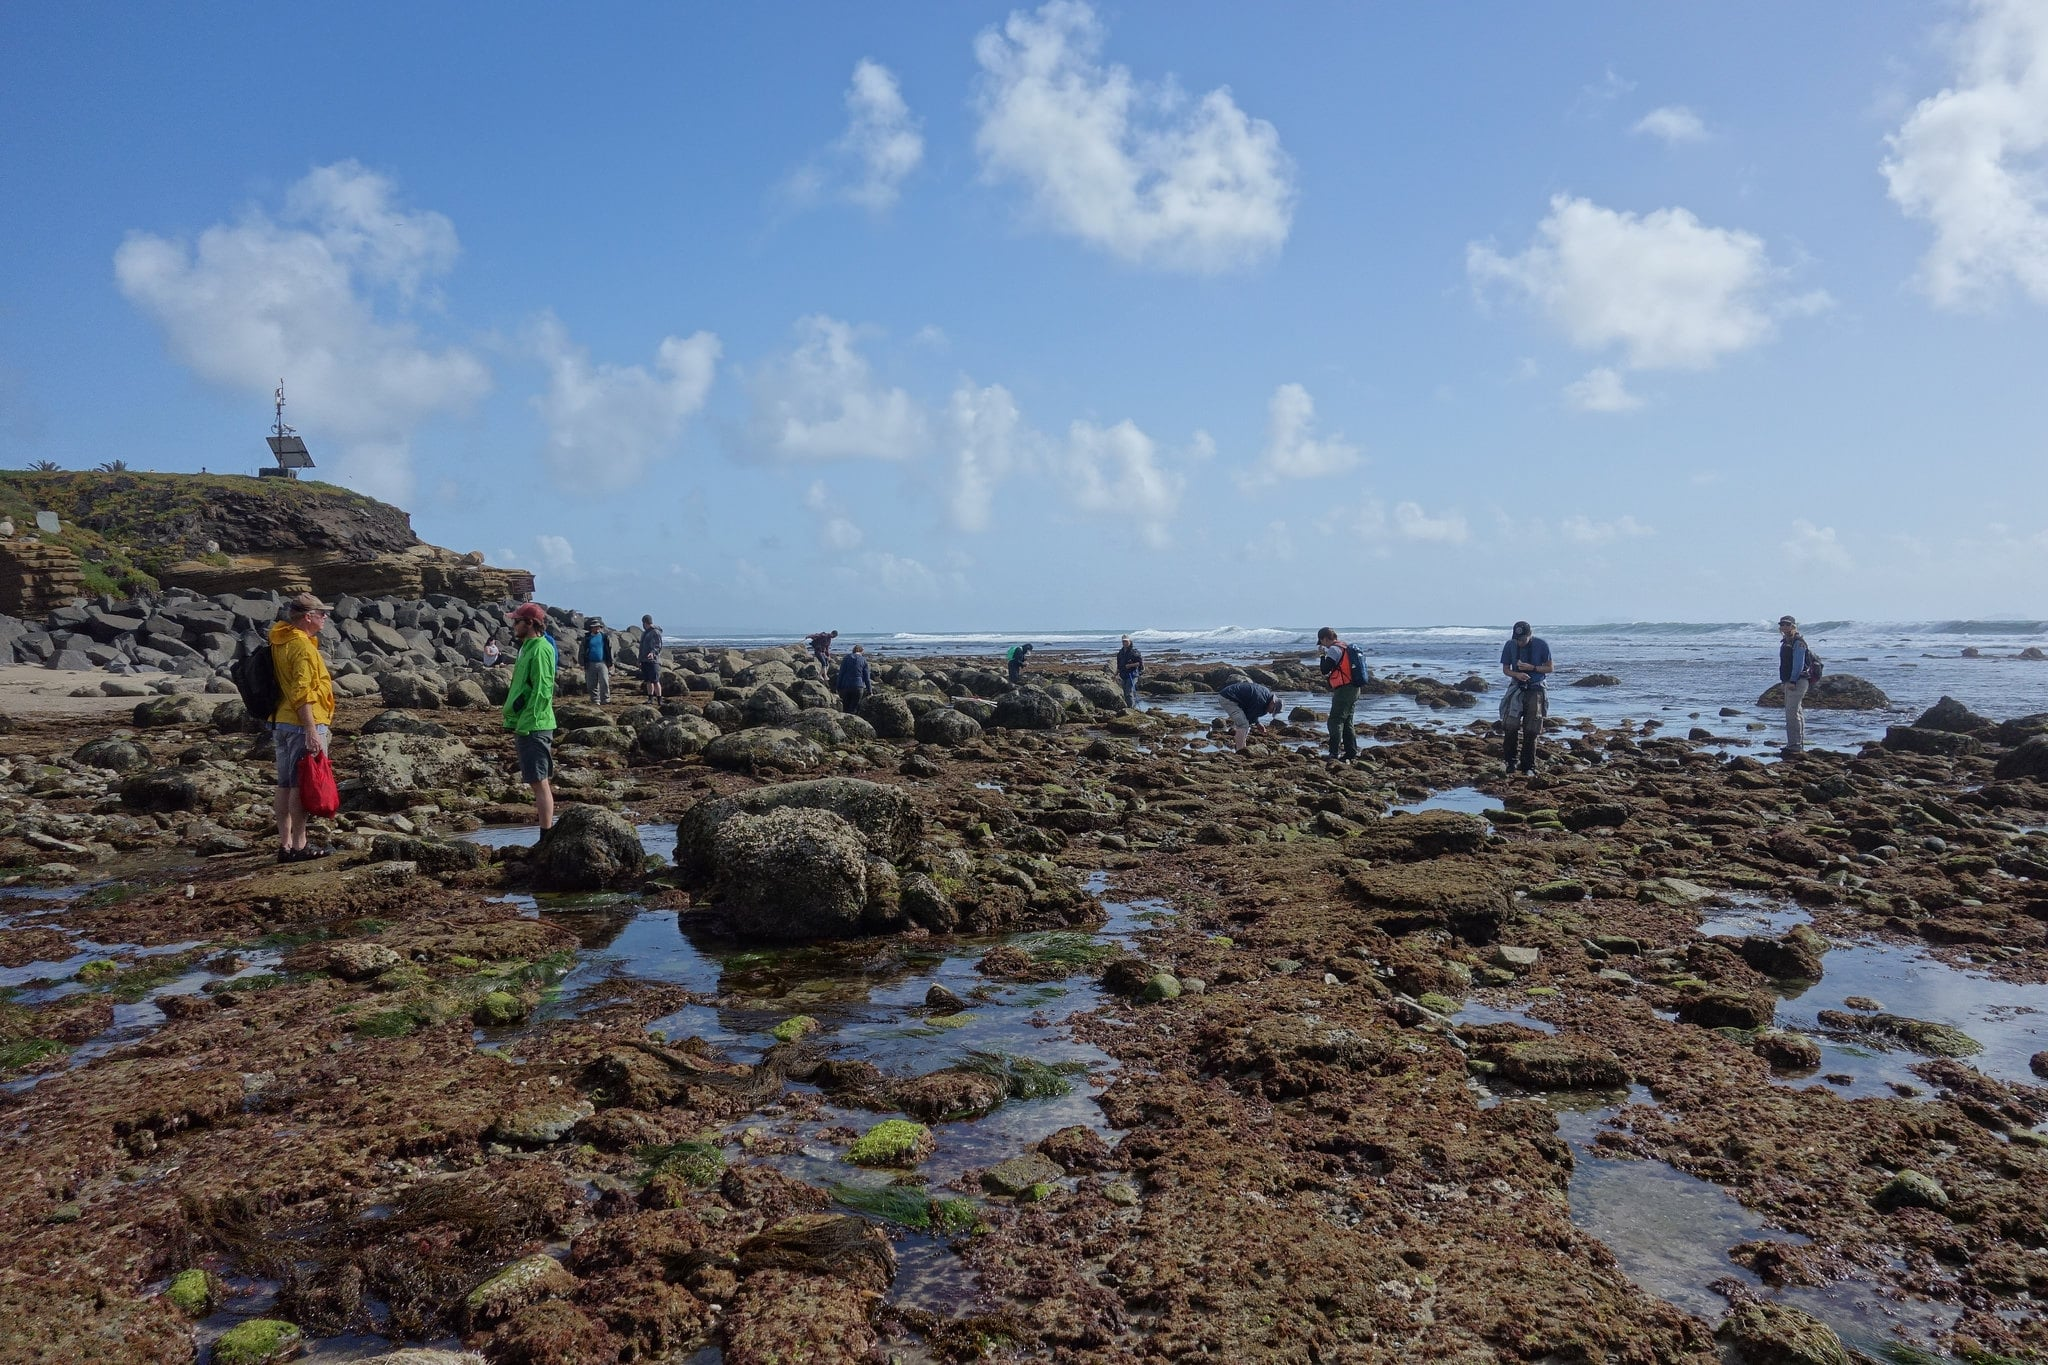 Cabrillo tide pools are some of the best in San Diego